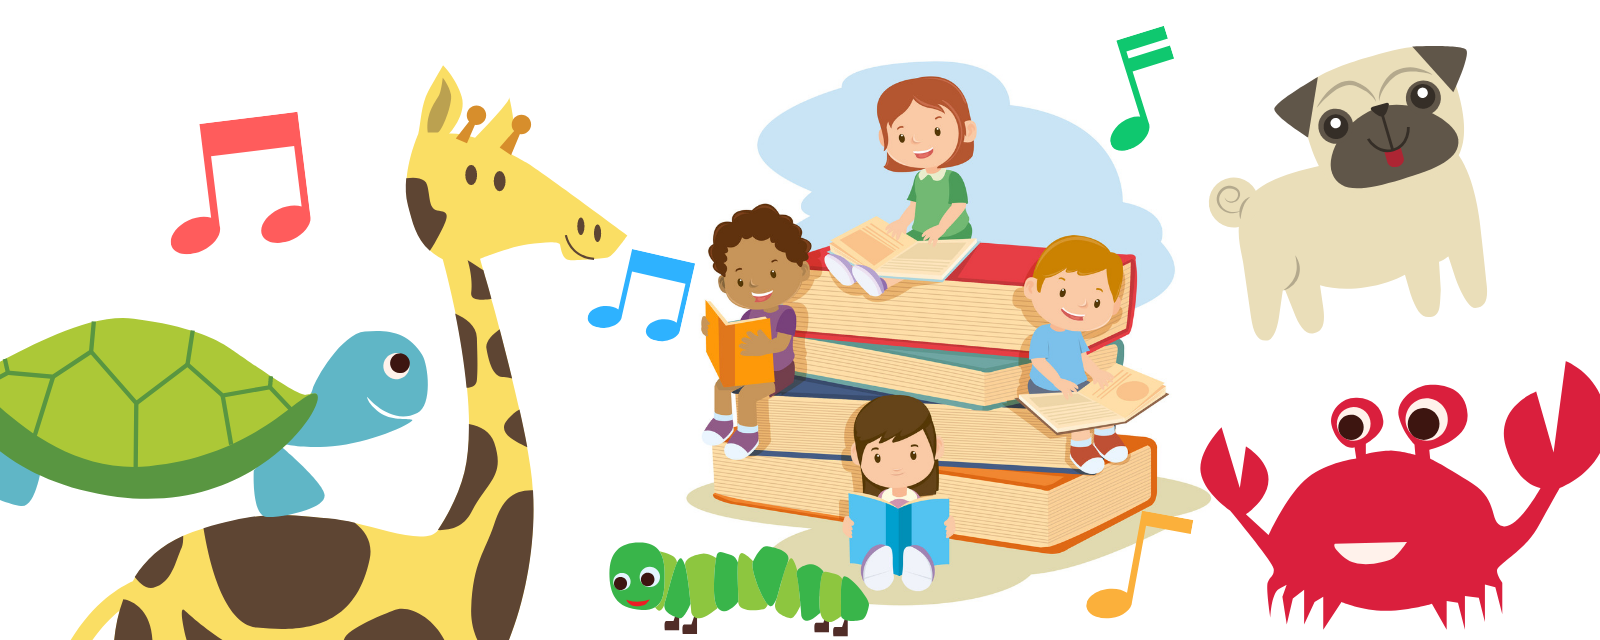 Fun image of animals and kids reading books